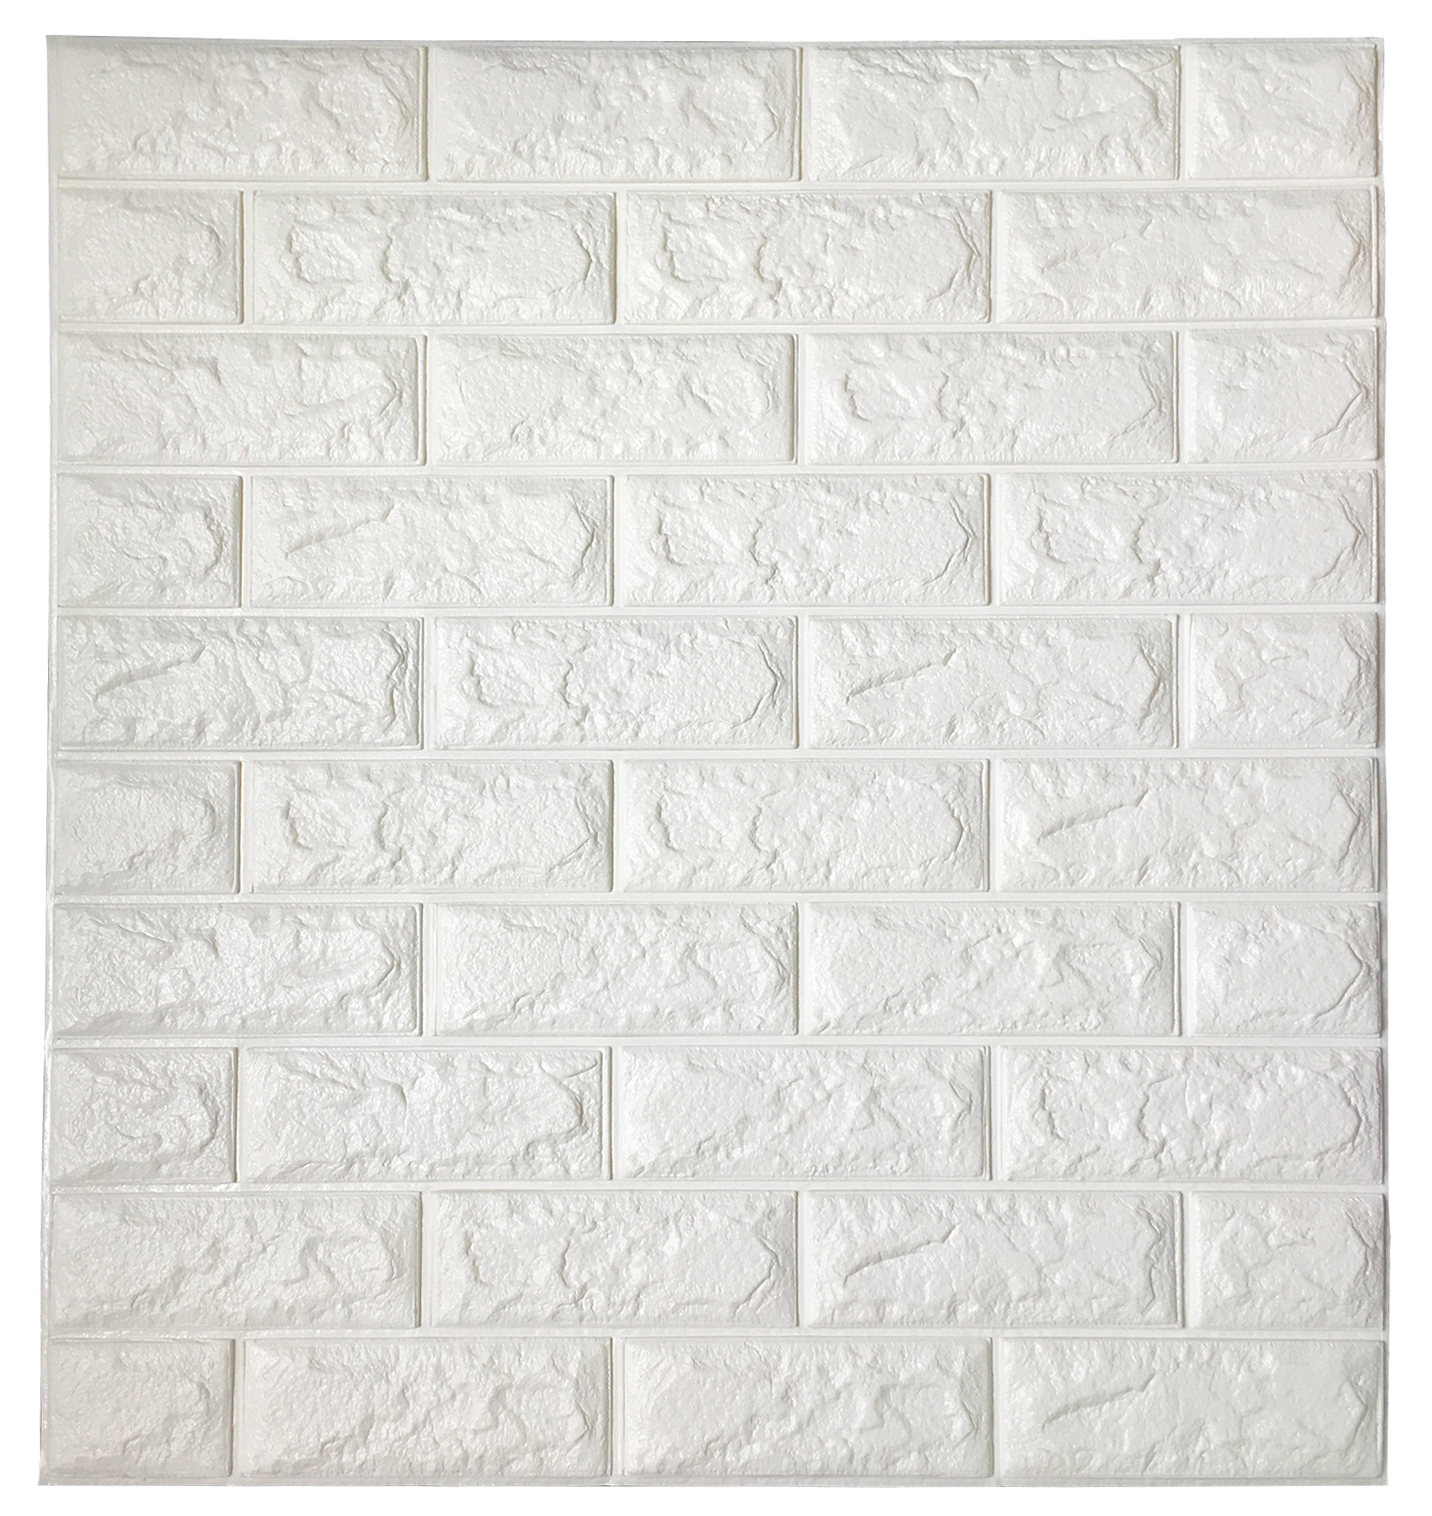 Peel stick 3d wall panels white 3d brick wallpaper 2 6 for 3d wallpaper for kitchen walls